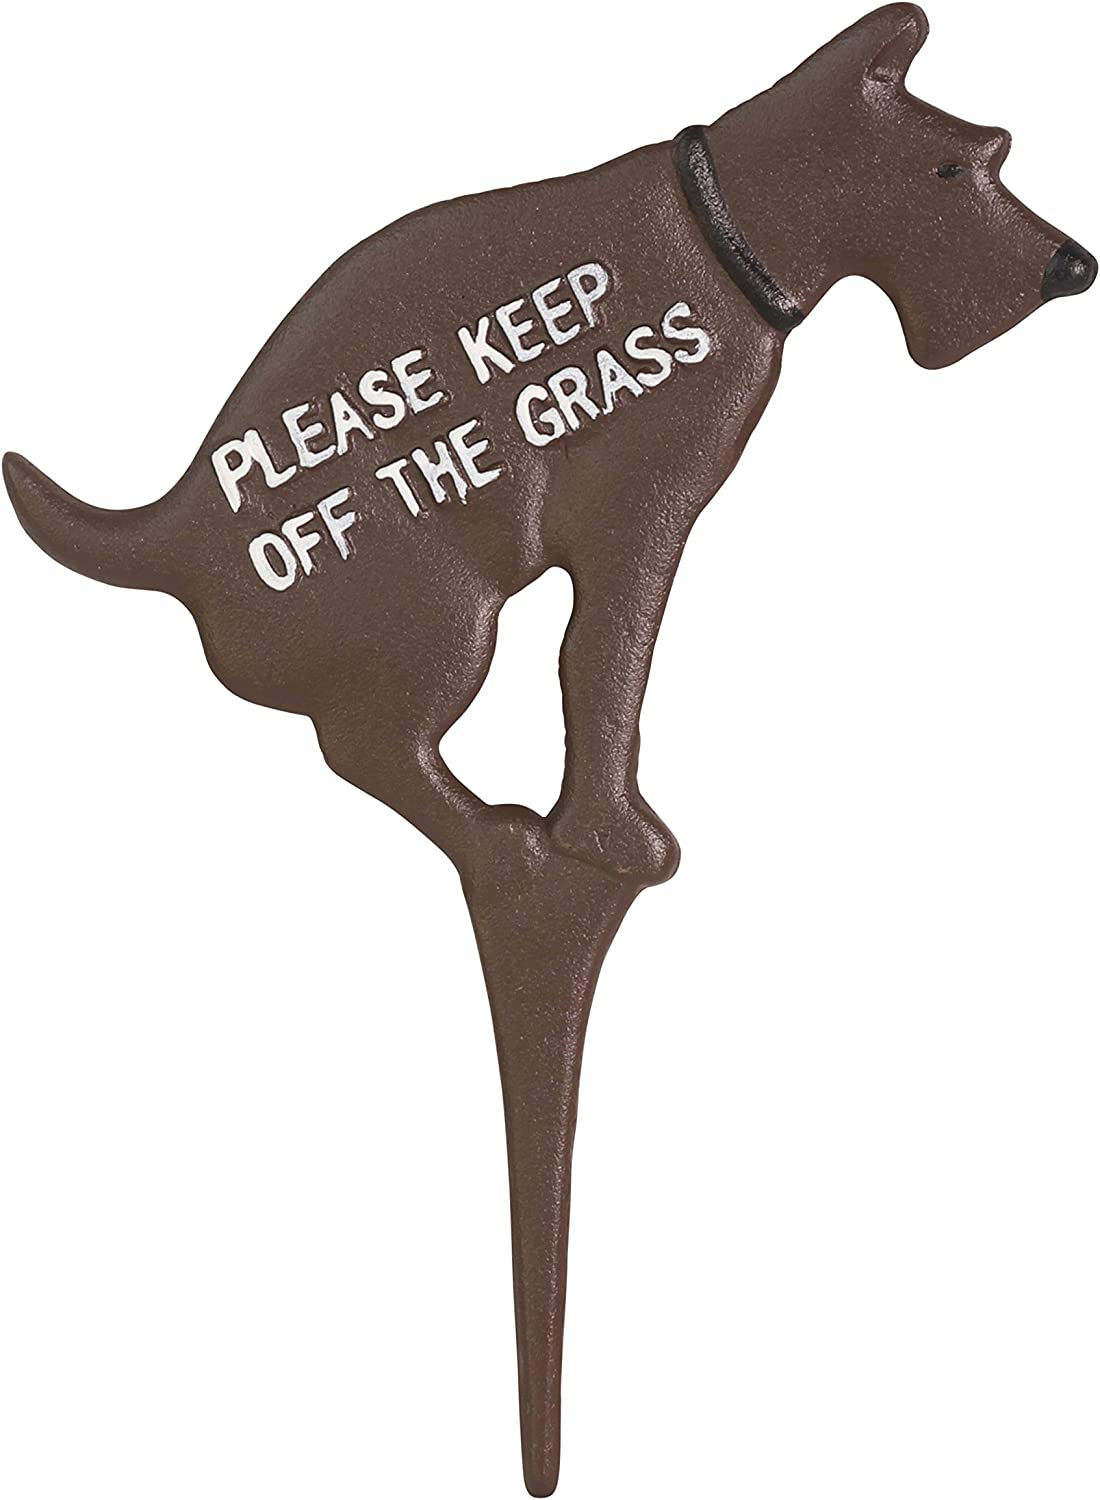 """Keep Dog Off The Grass Yard Sign No Pooping Large 8.5"""" x 12"""" Solid Cast Iron Painted on Both Sides (Brown with White Paint)"""